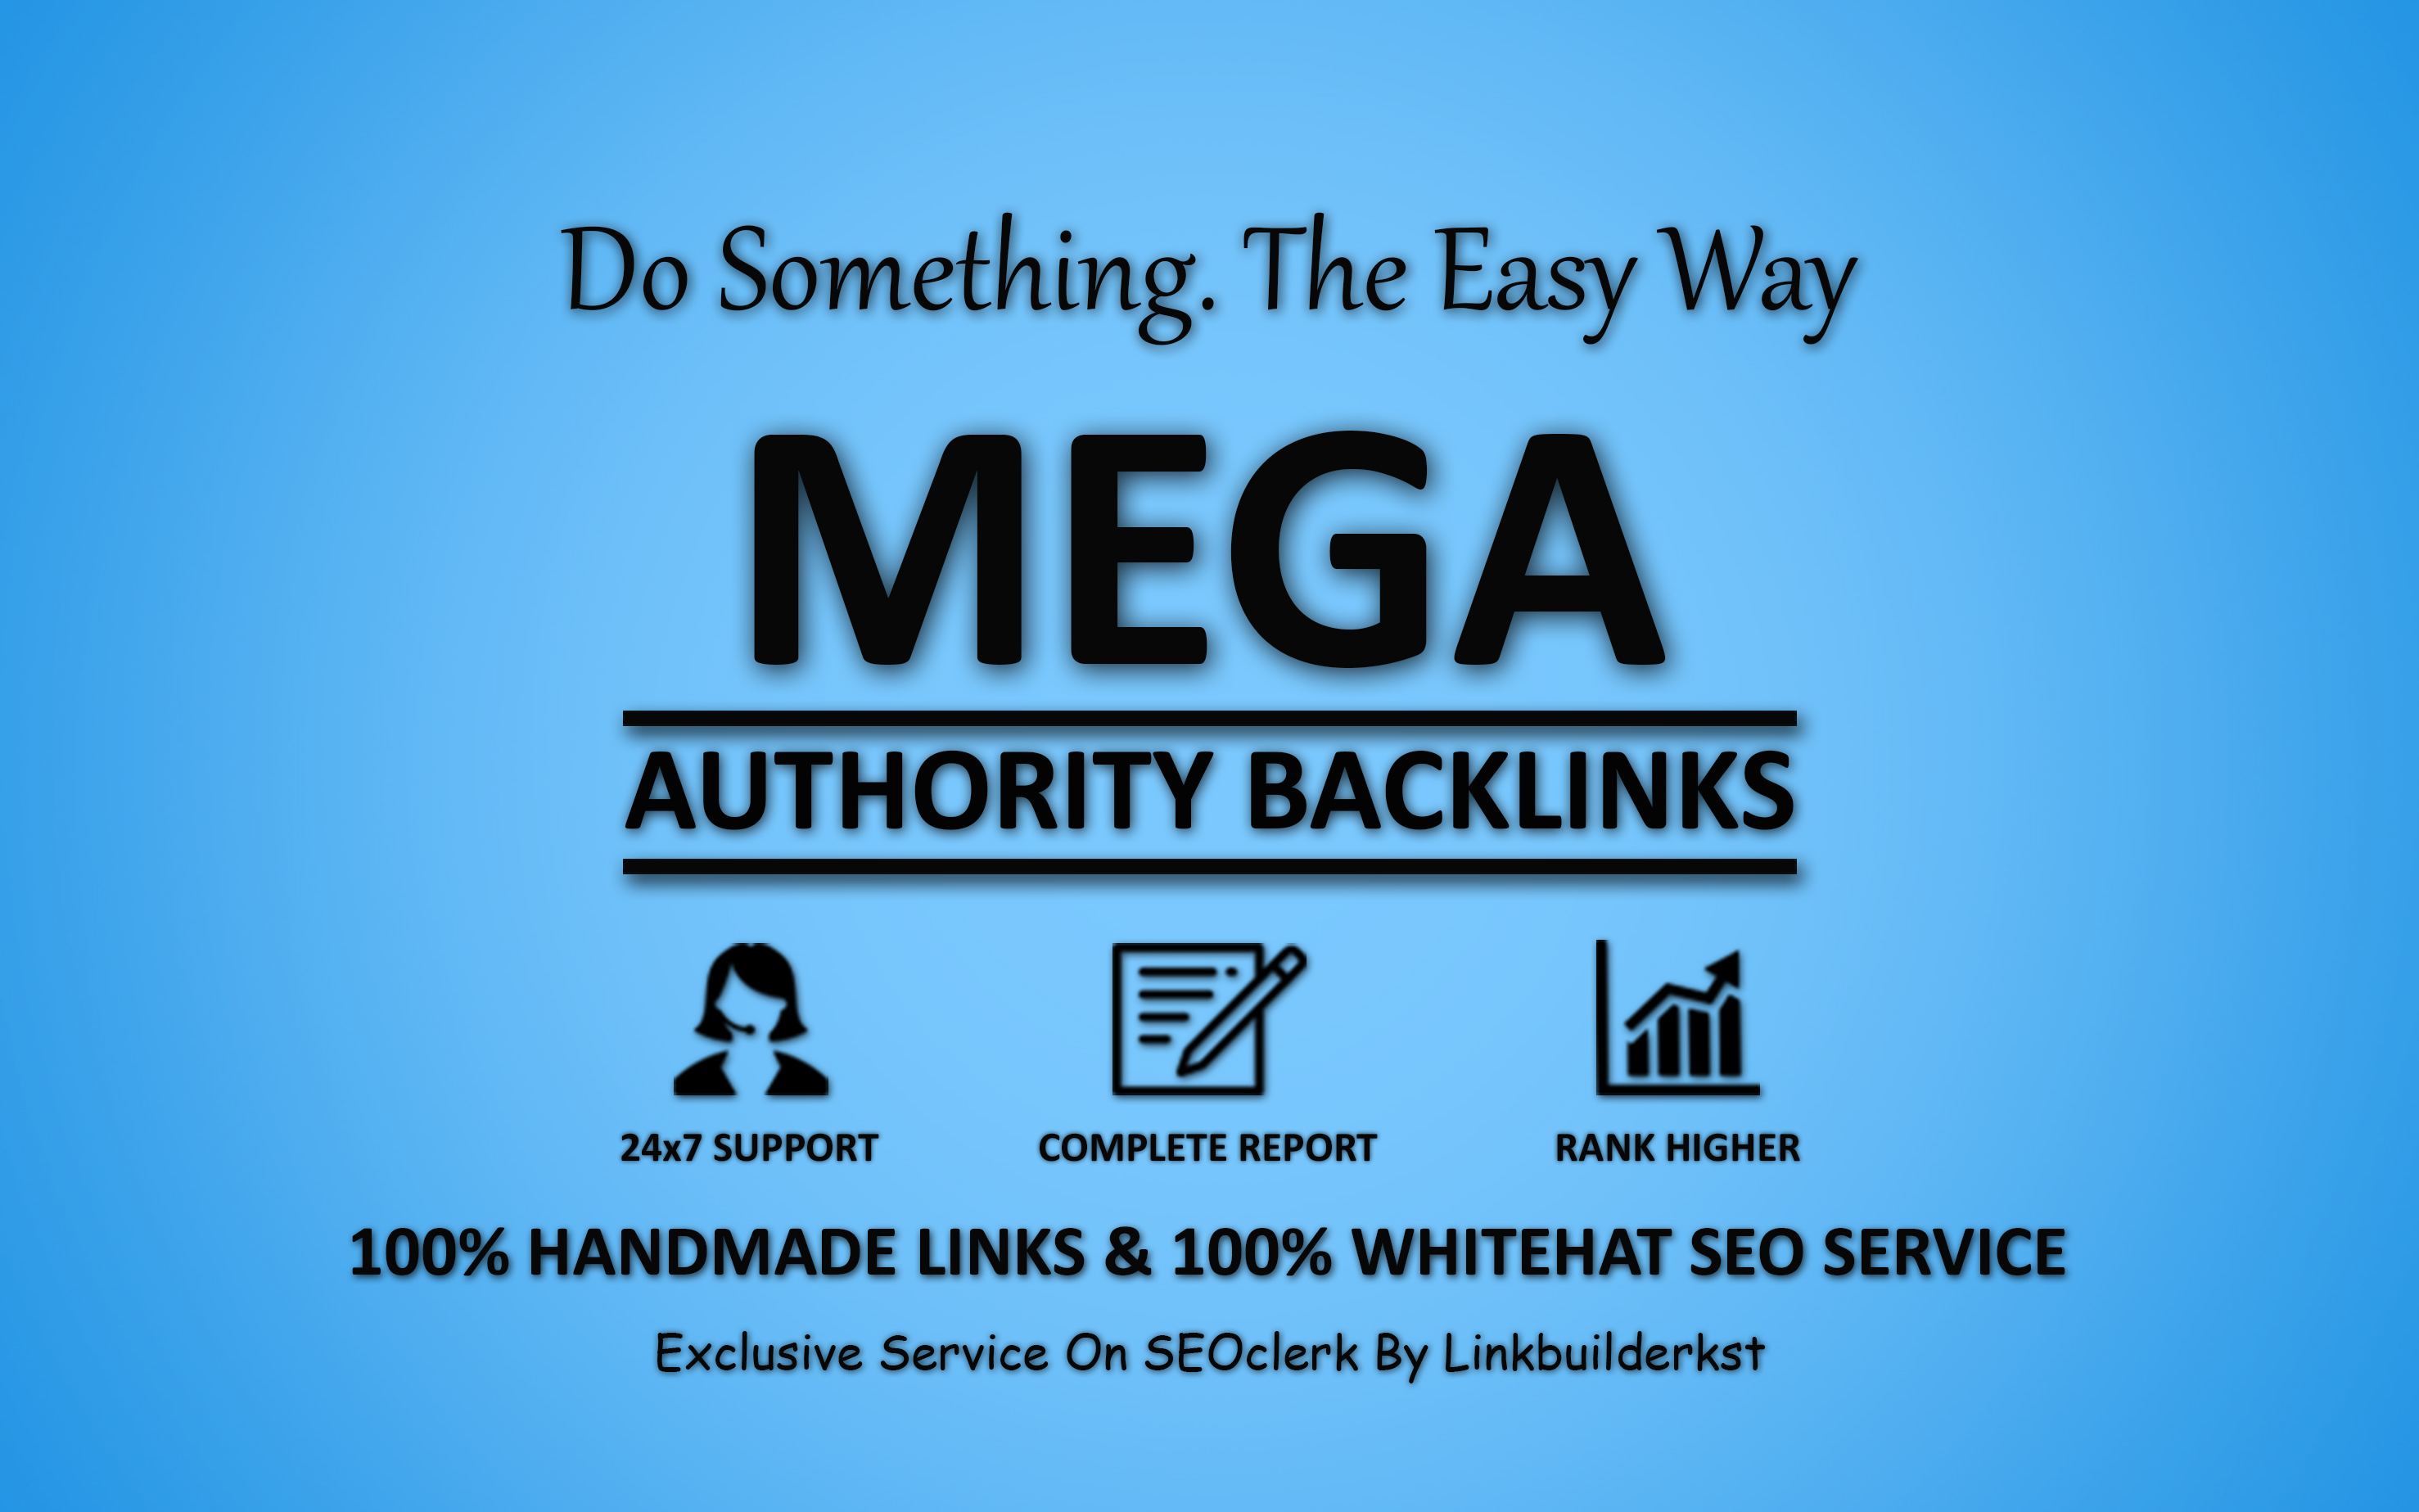 Mega Authority Backlinks - Skyrocket Your Google Ranking with Our WhiteHat SEO Service